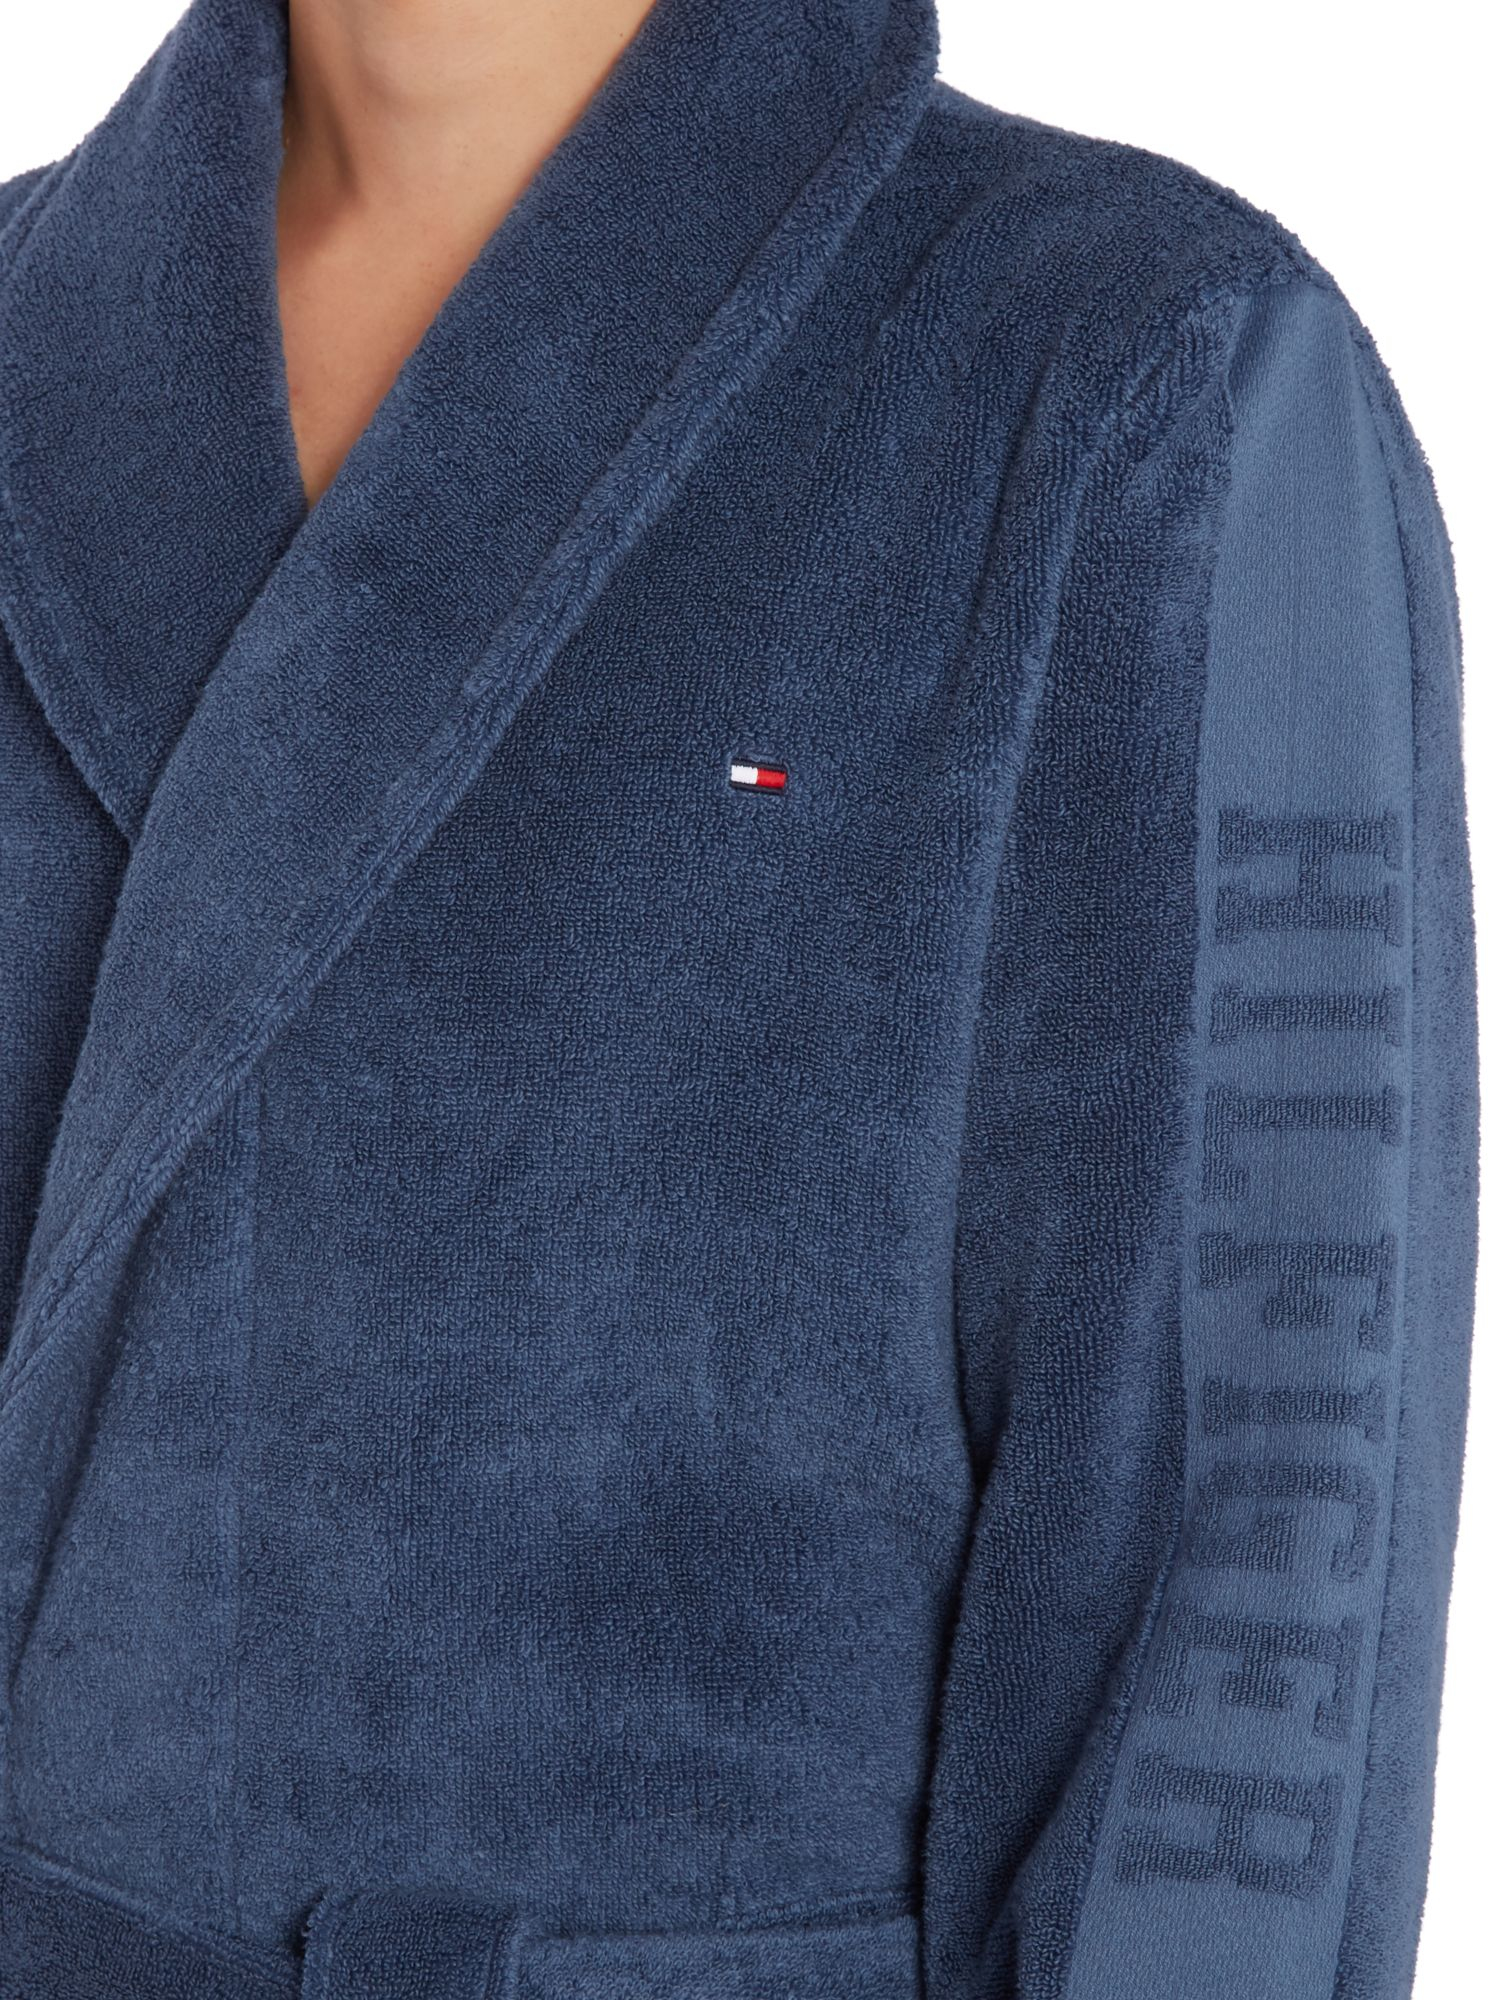 Tommy Hilfiger Dressing Gown - Home Decorating Ideas & Interior Design